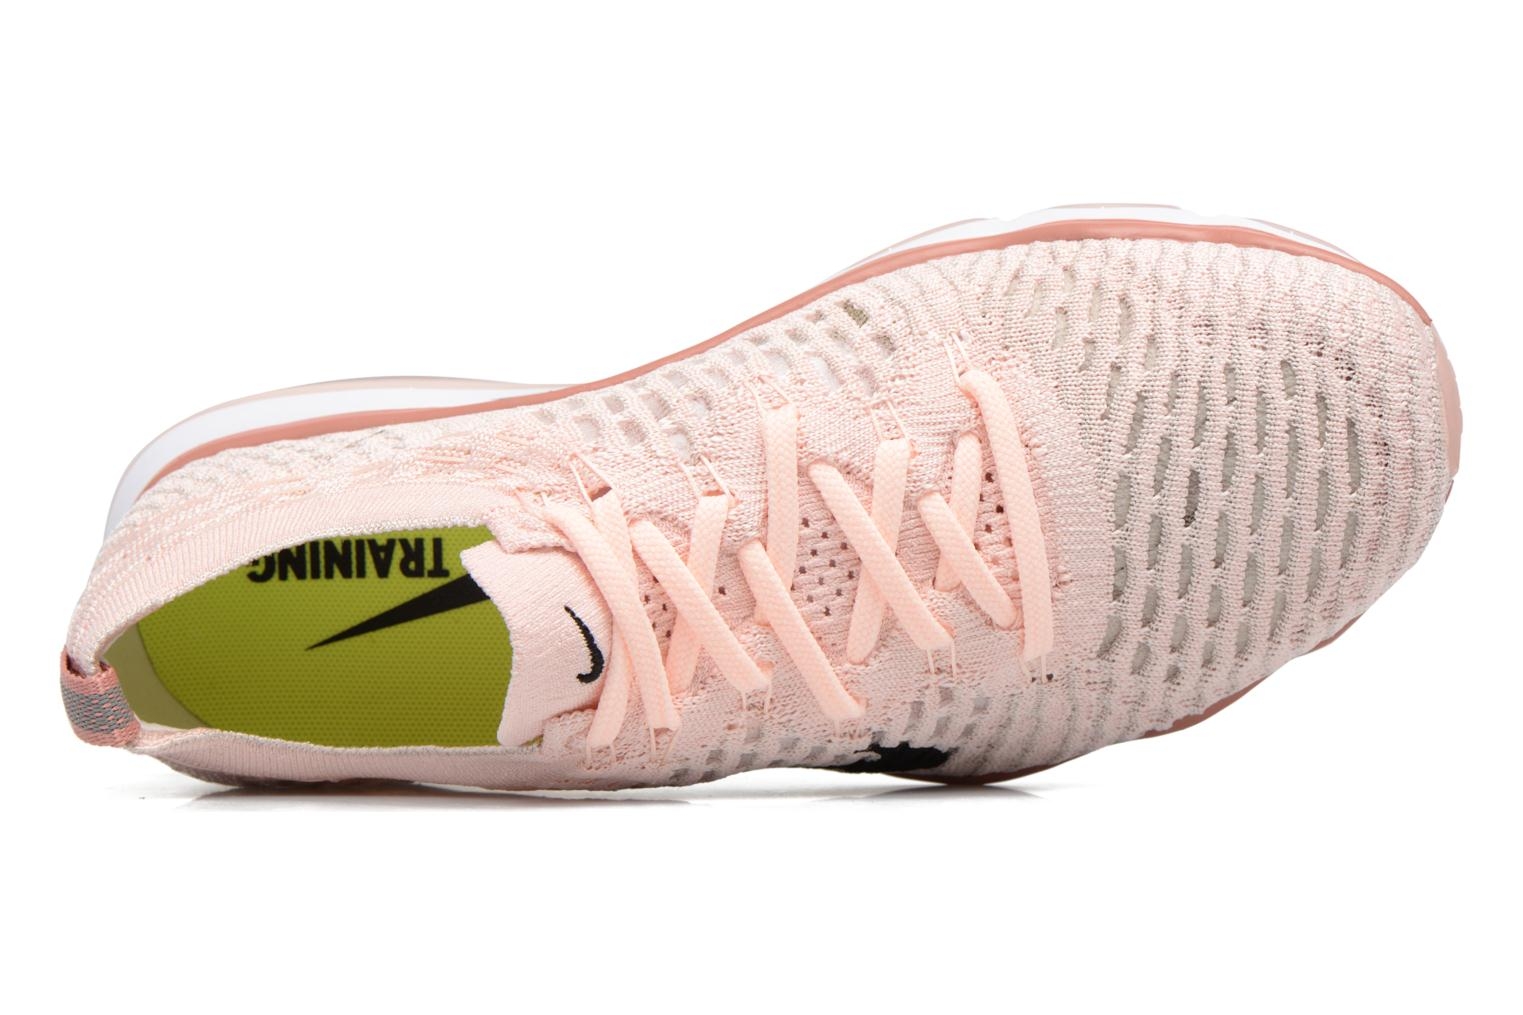 W Air Zoom Fearless Fk Bionic Sunset Tint/Black-Red Stardust-White